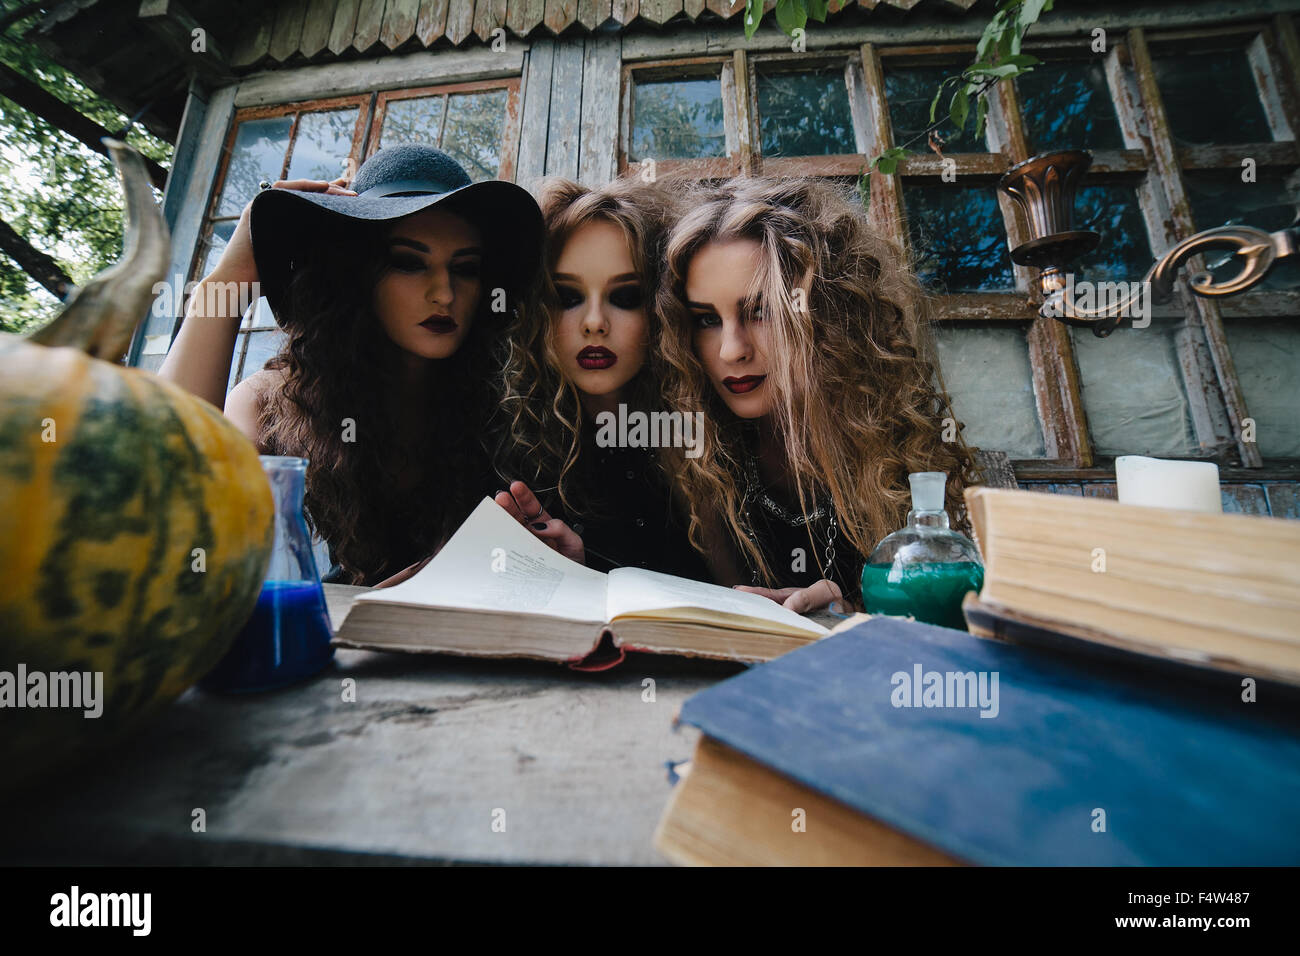 Three vintage witches perform magic ritual, at the table, reading a